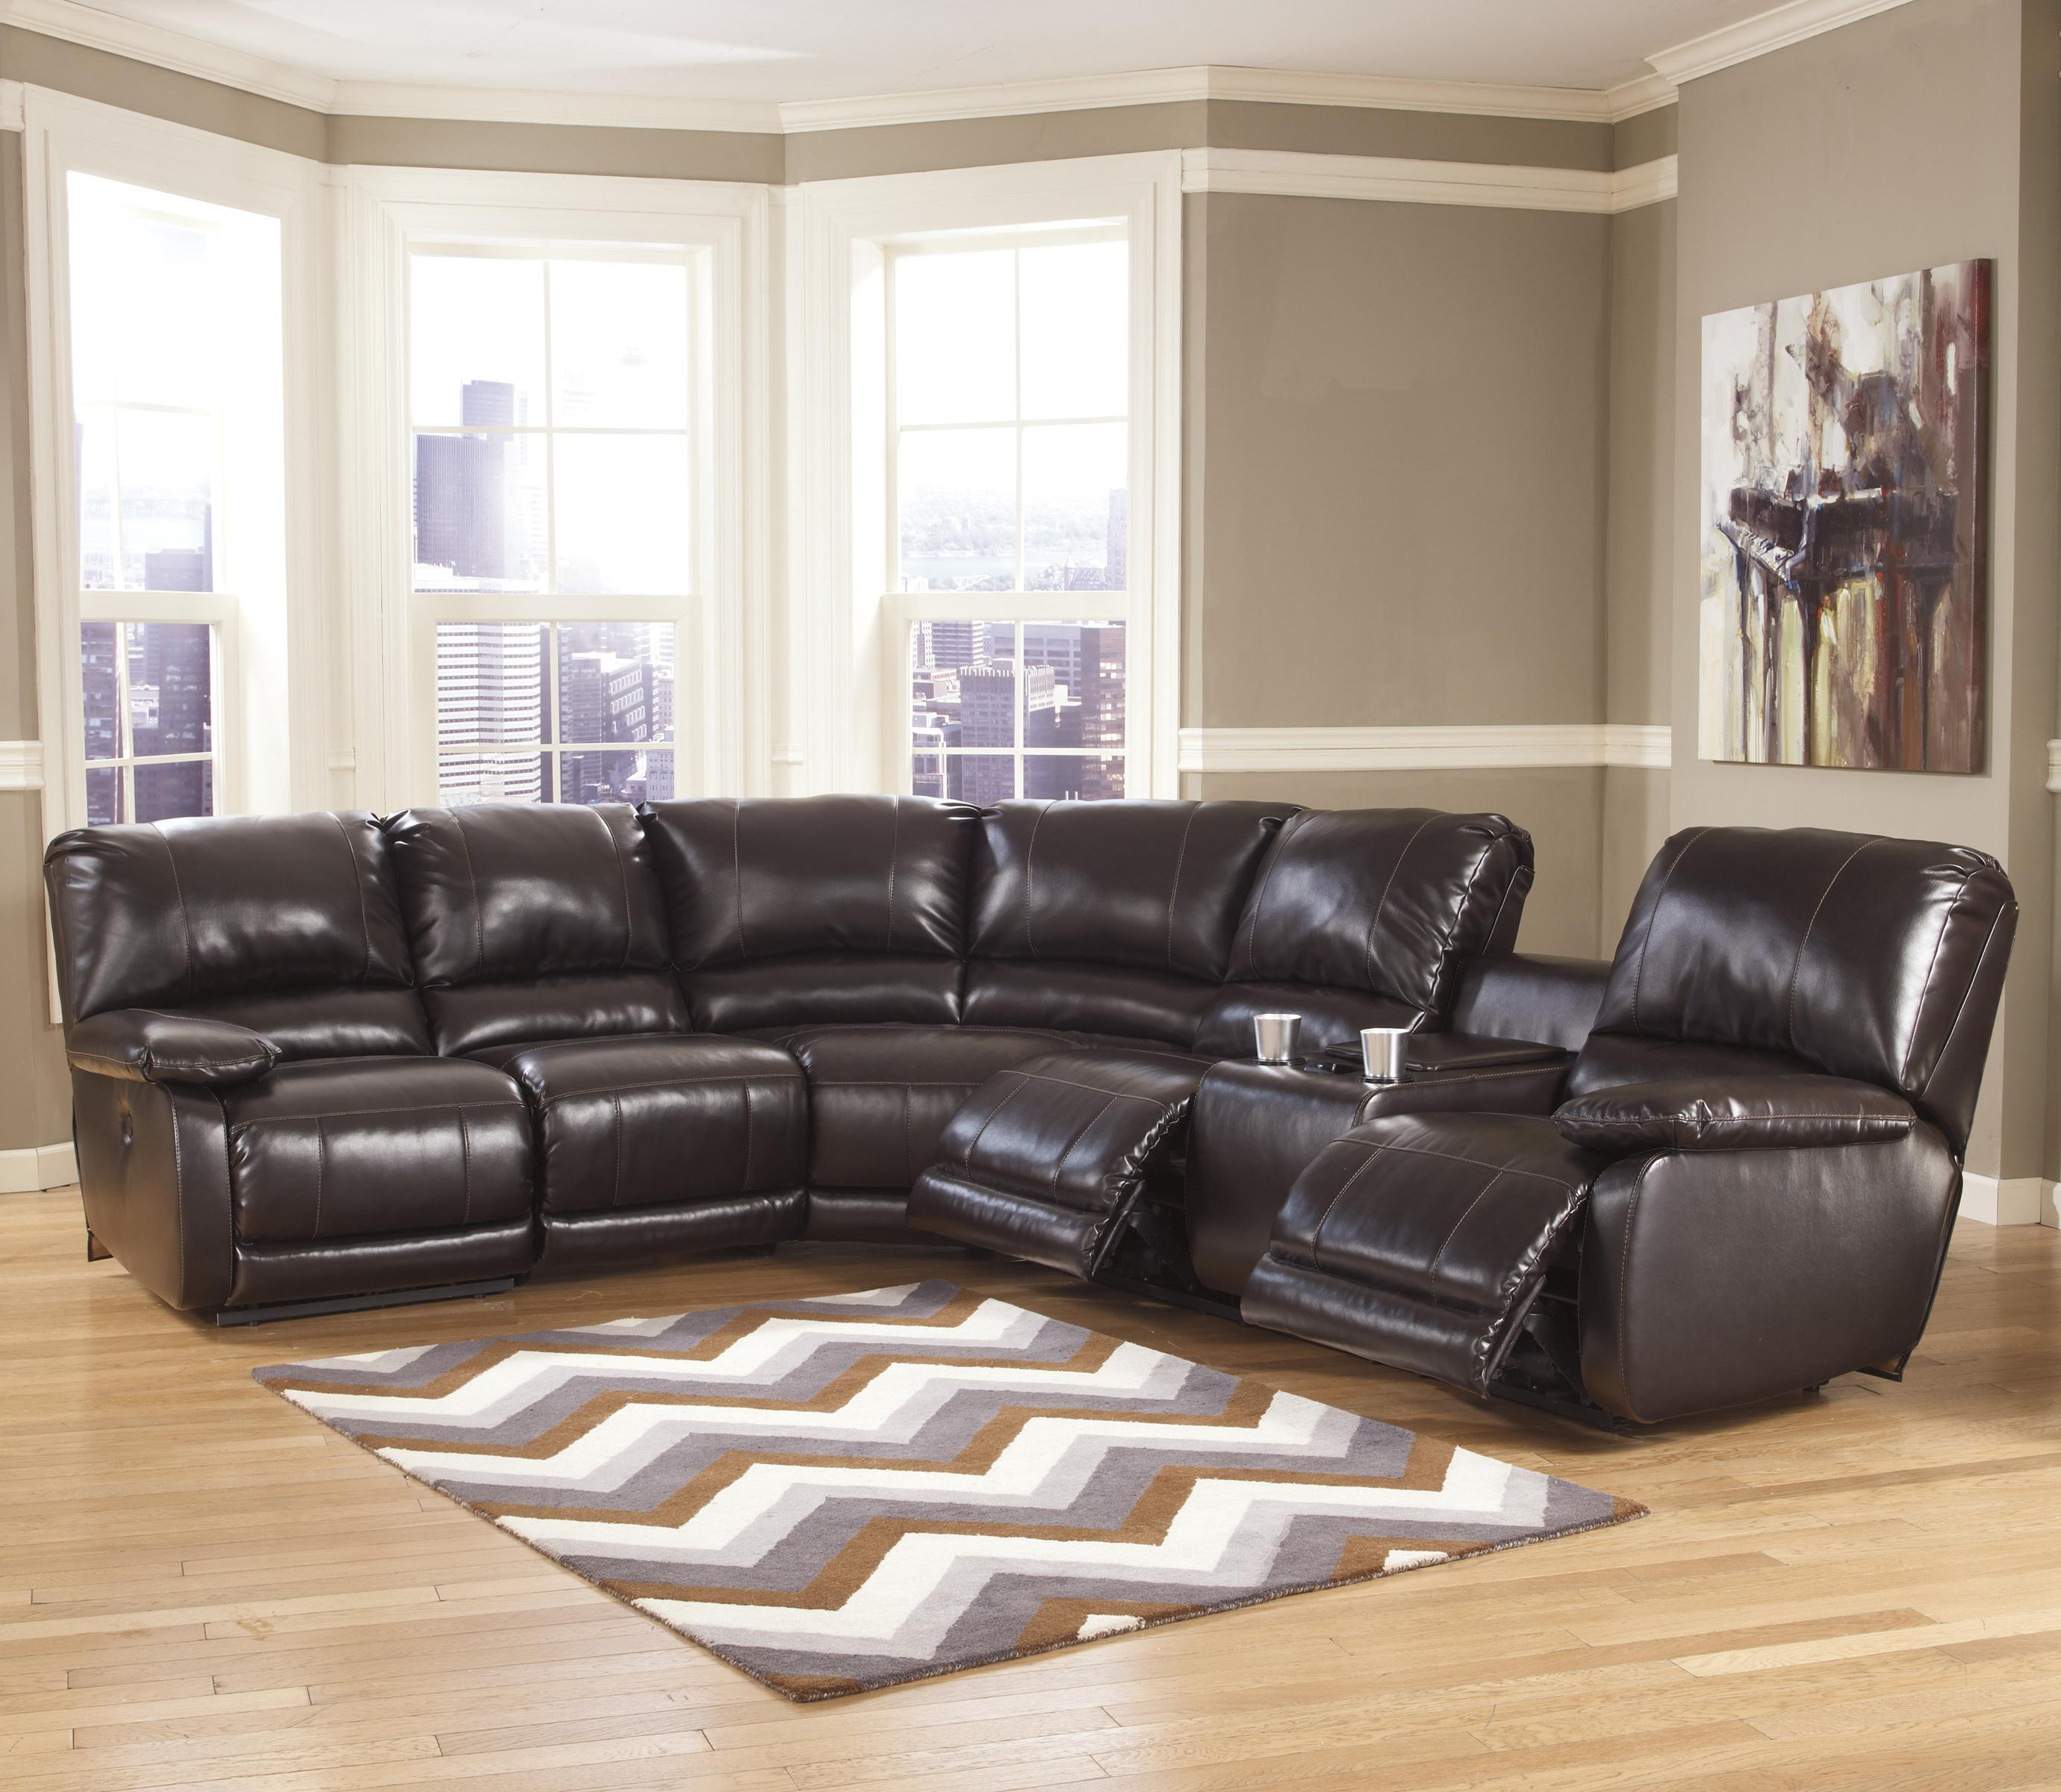 Signature Design by Ashley Capote DuraBlend® - Chocolate Power Reclining Sectional with Heat, Massage - Item Number: 4450058+46+77+90